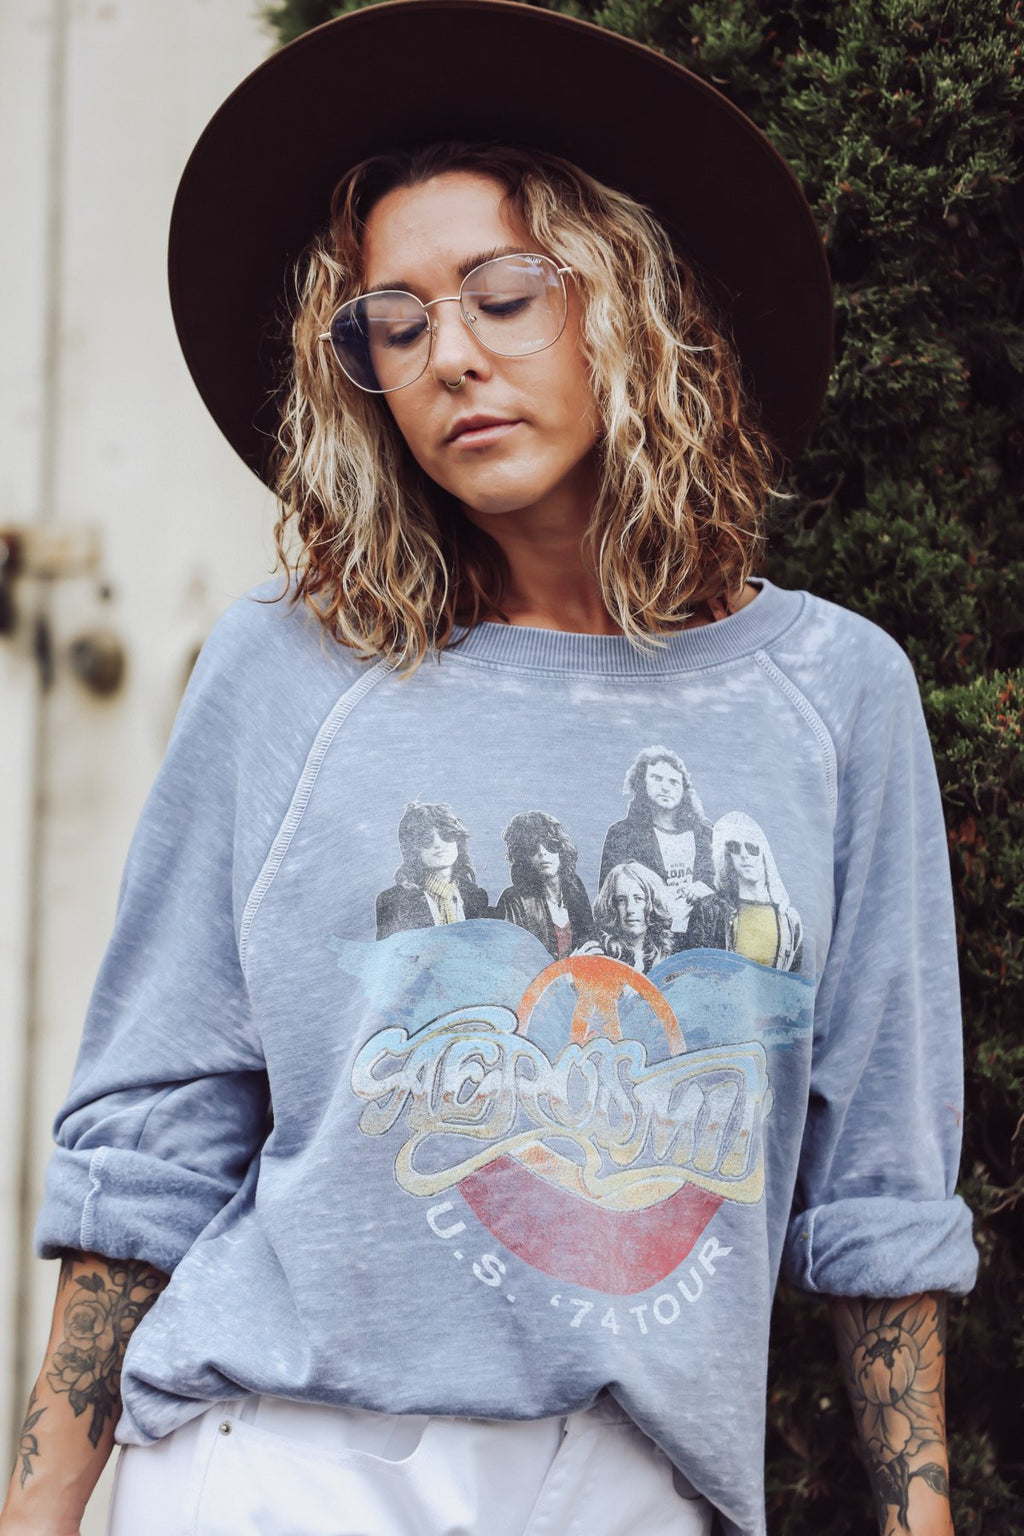 AEROSMITH US 1974 TOUR SWEATSHIRT - [jayden_p]